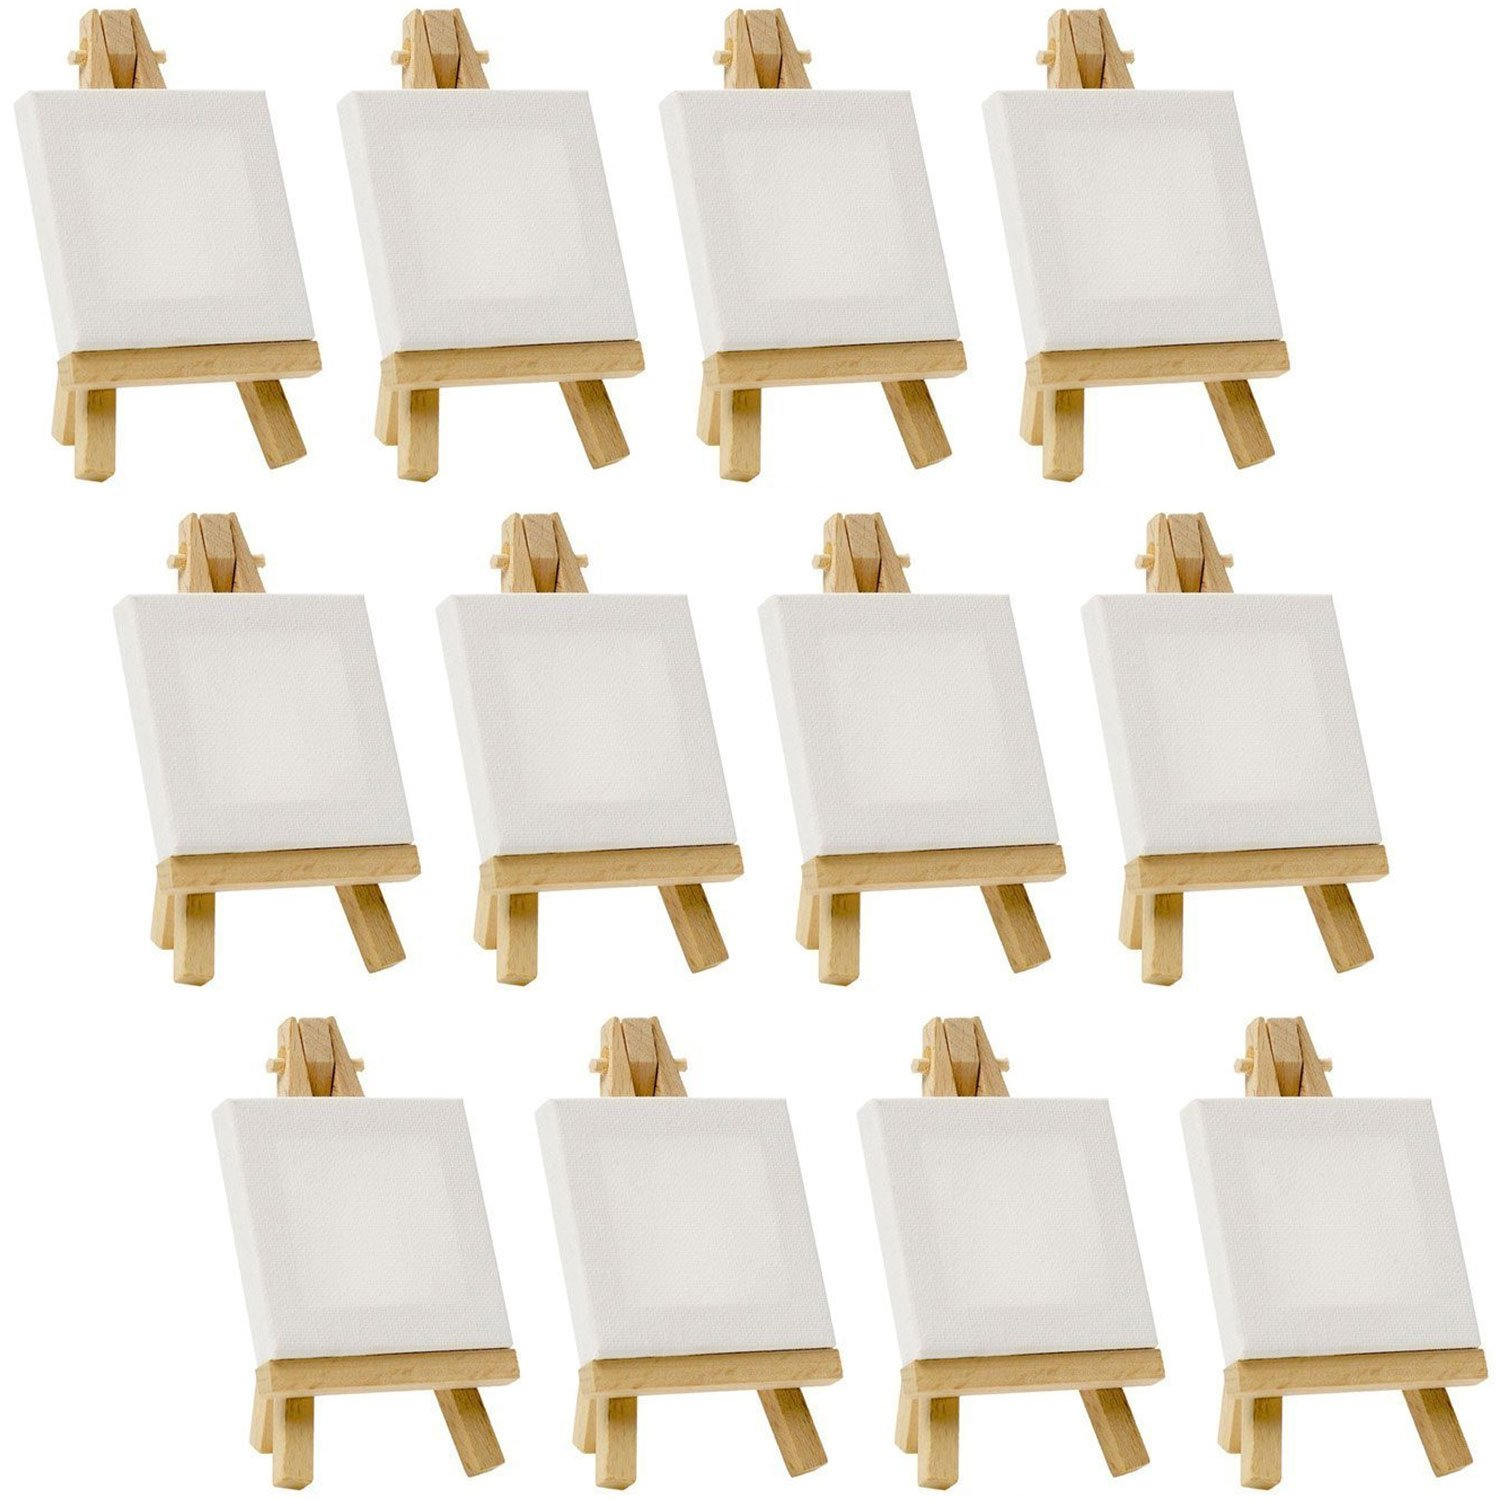 US Art Supply Artists 3''x3'' Mini Canvas & 5'' Mini Easel Set Painting Craft Drawing - Set Contains: 12 Mini Canvases & 12 Mini Easels by US Art Supply